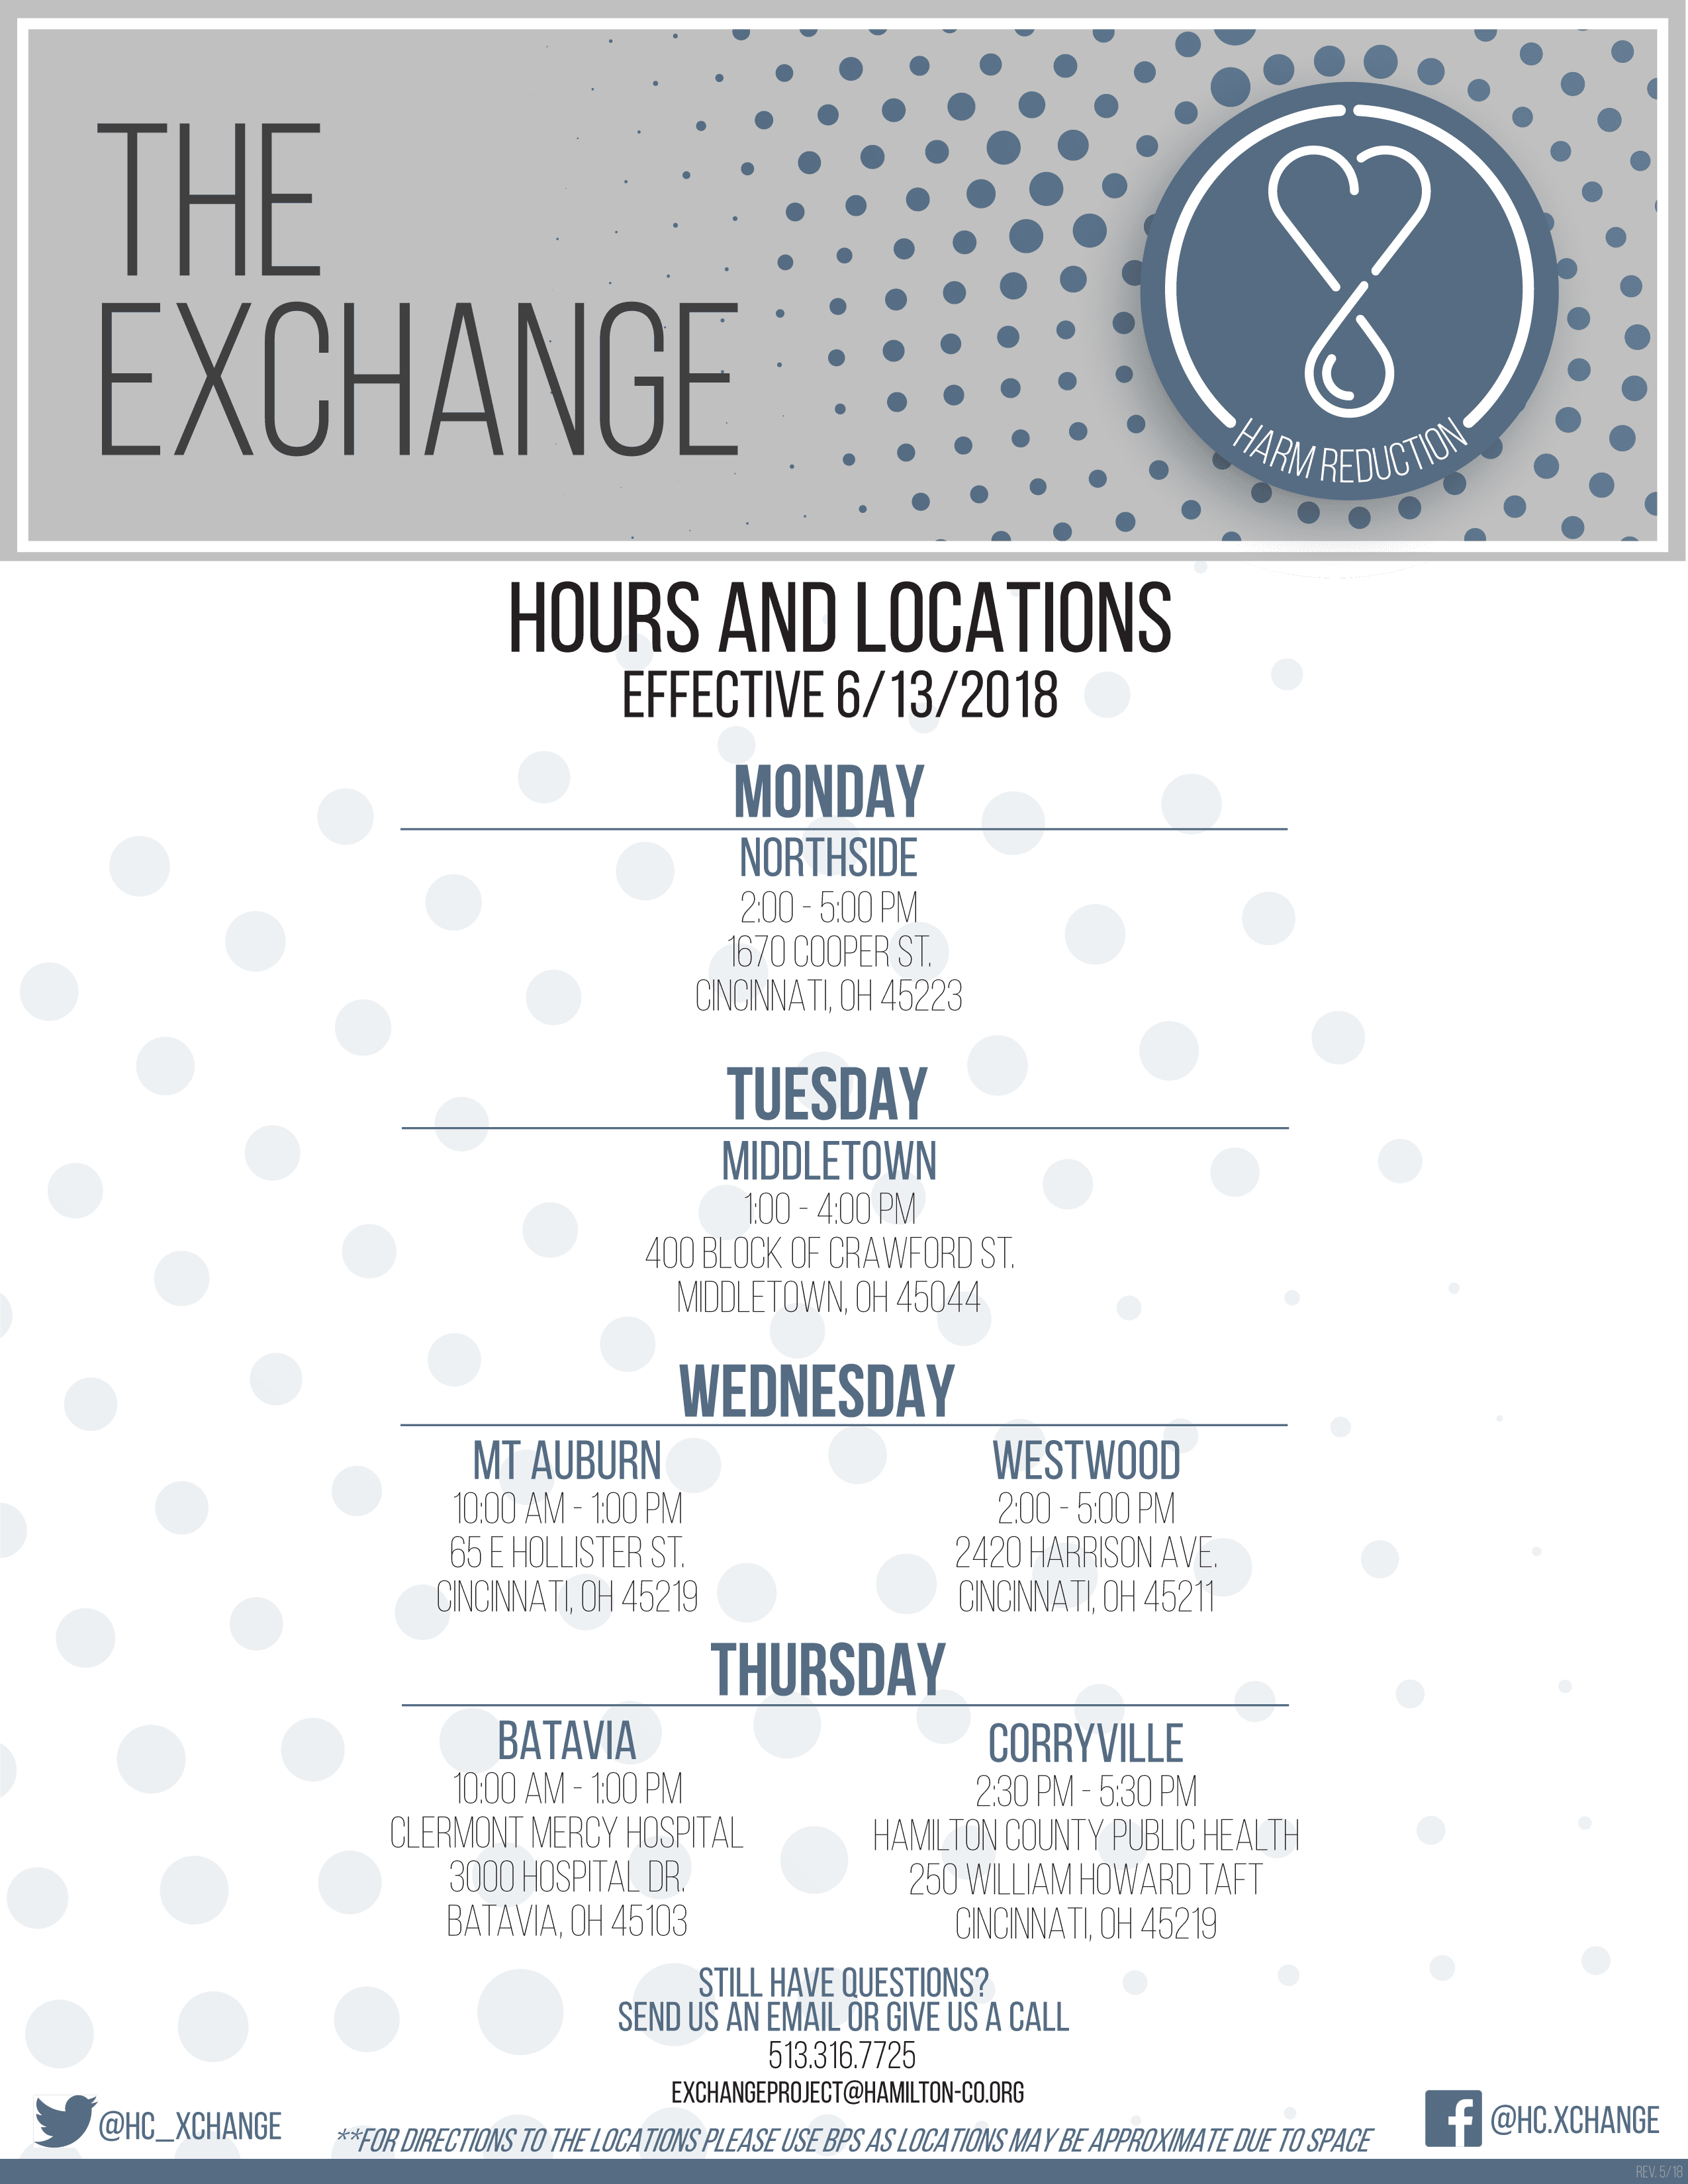 Exchange Hours